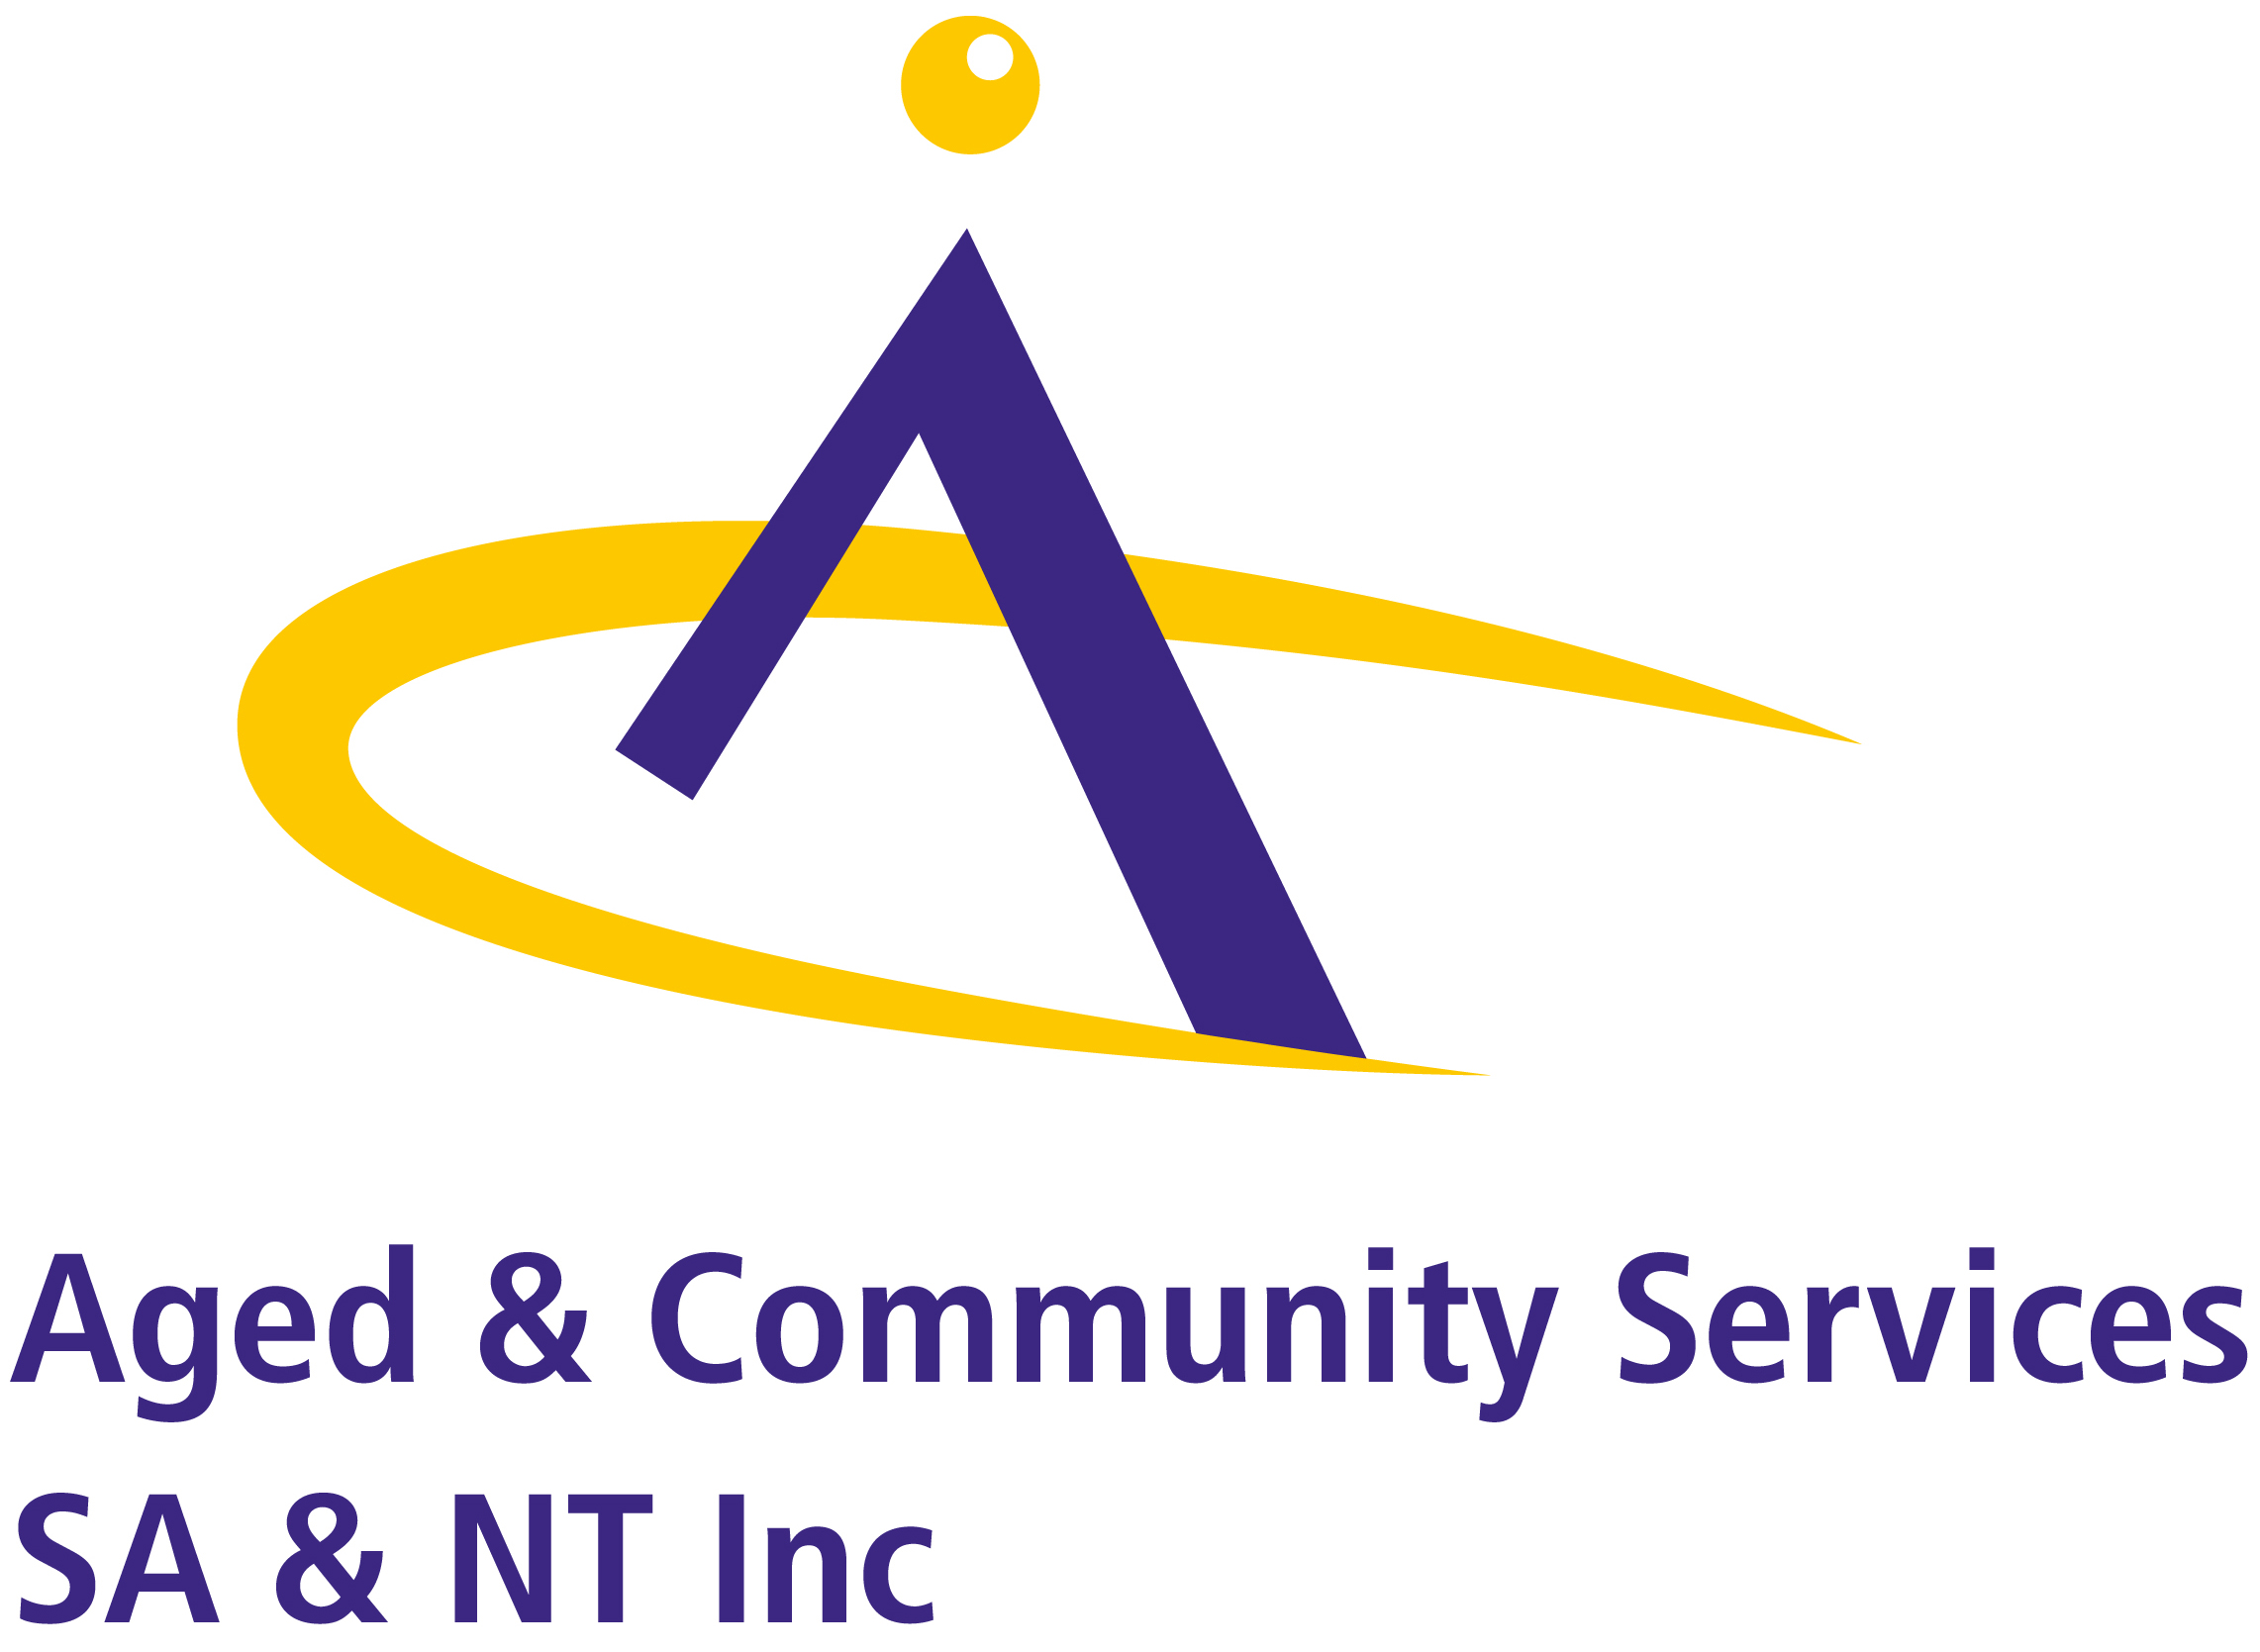 Aged & Community Services SA & NT Inc